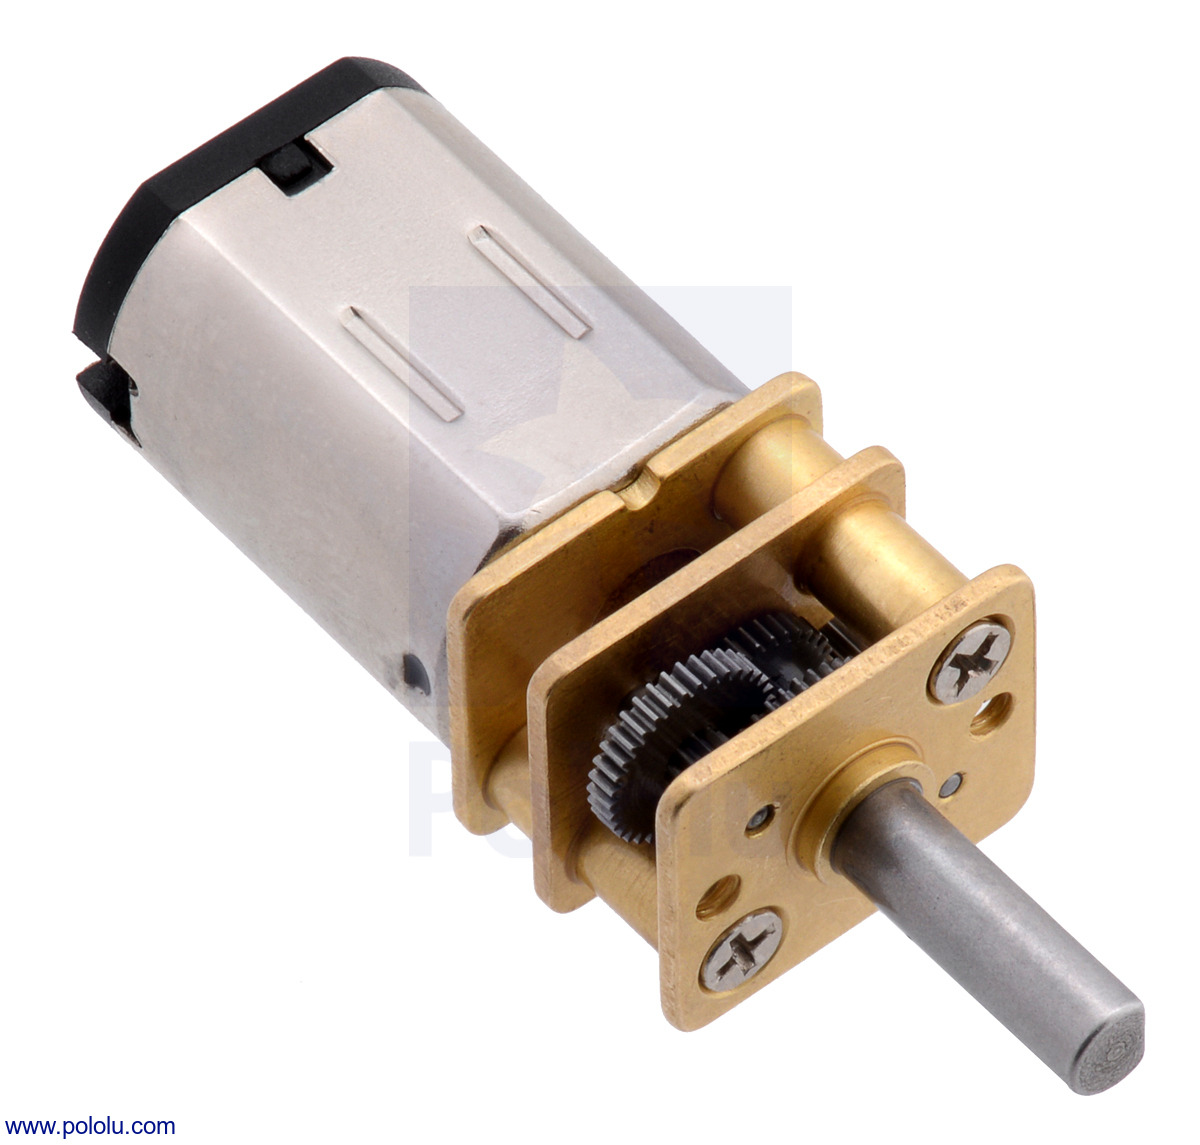 hight resolution of 250 1 micro metal gearmotor mp 6v